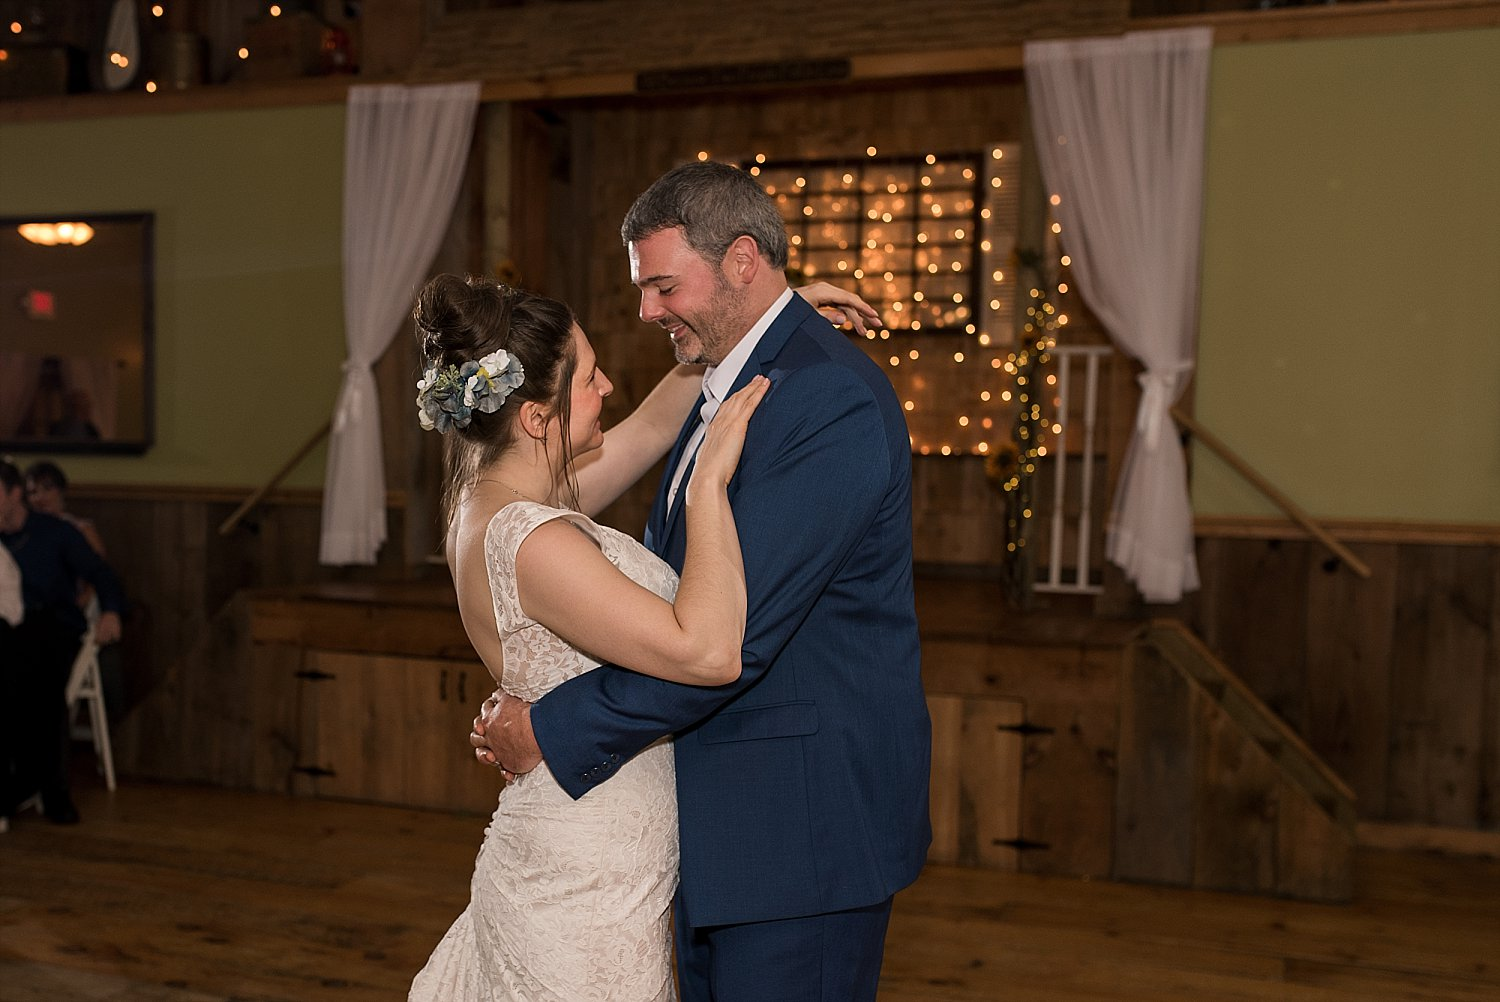 ct wedding photographer. bride and groom first dance.